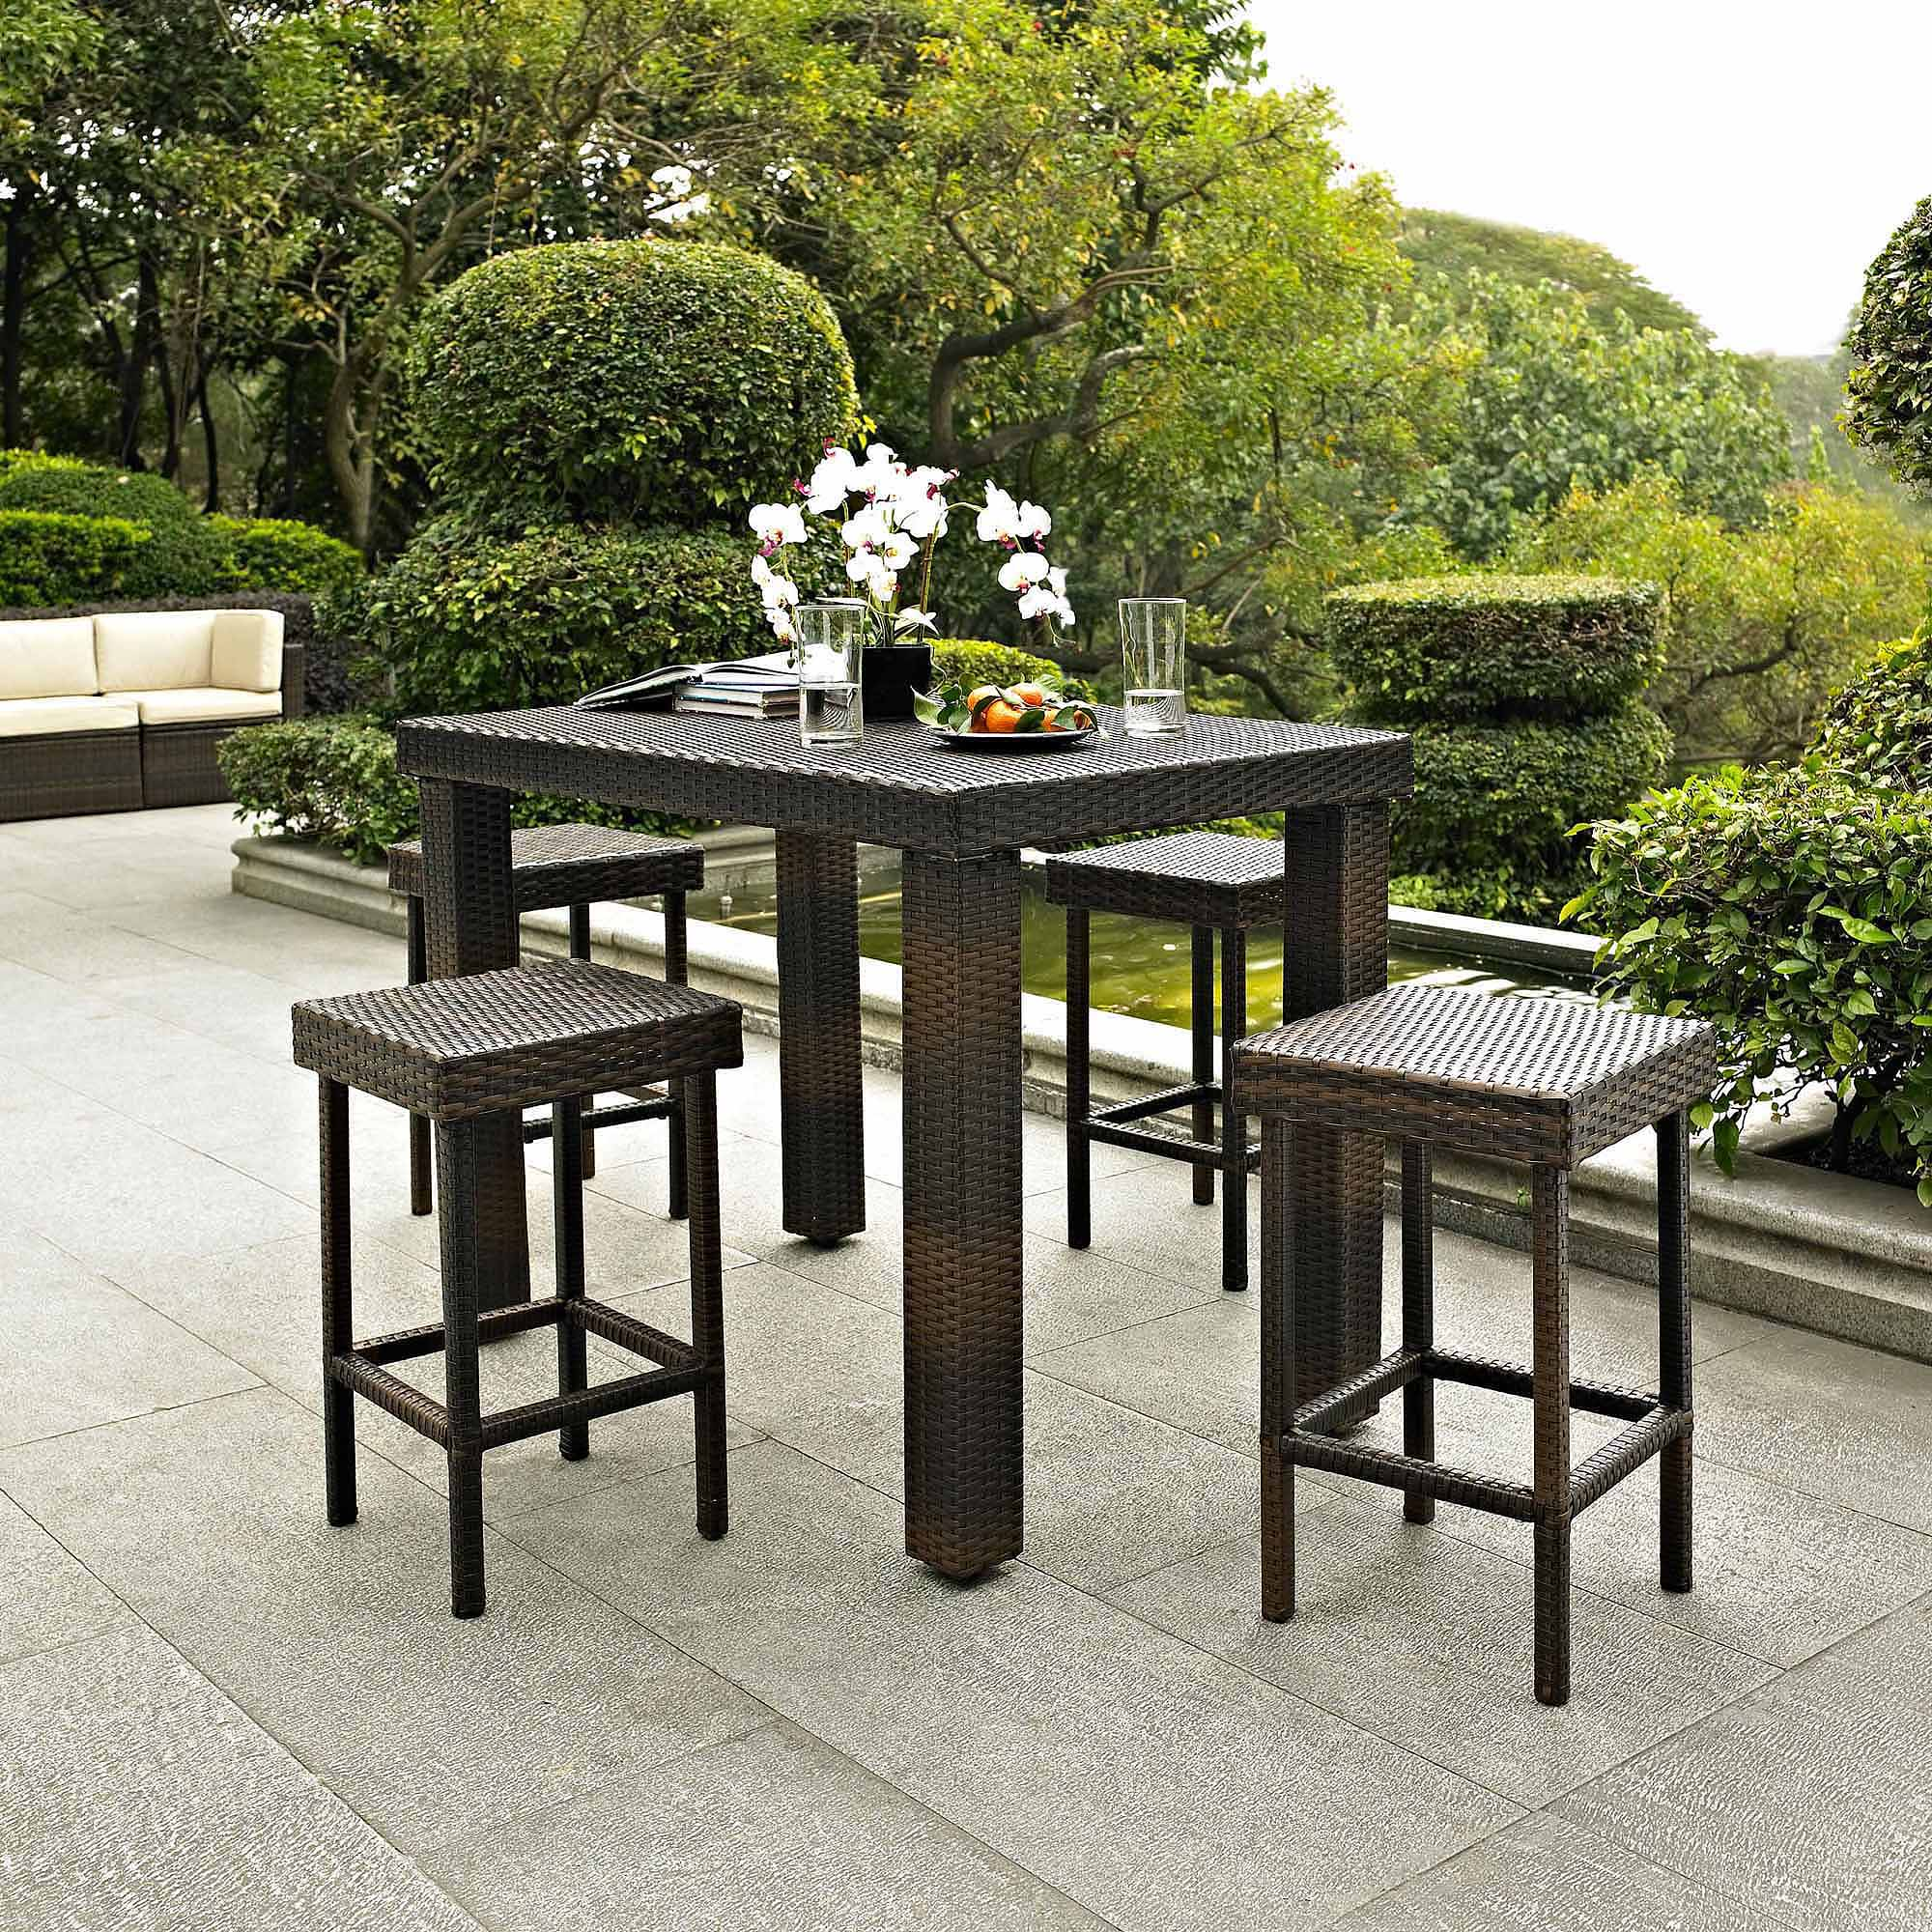 Crosley Furniture Palm Harbor 5-Piece Outdoor Wicker High Dining Set